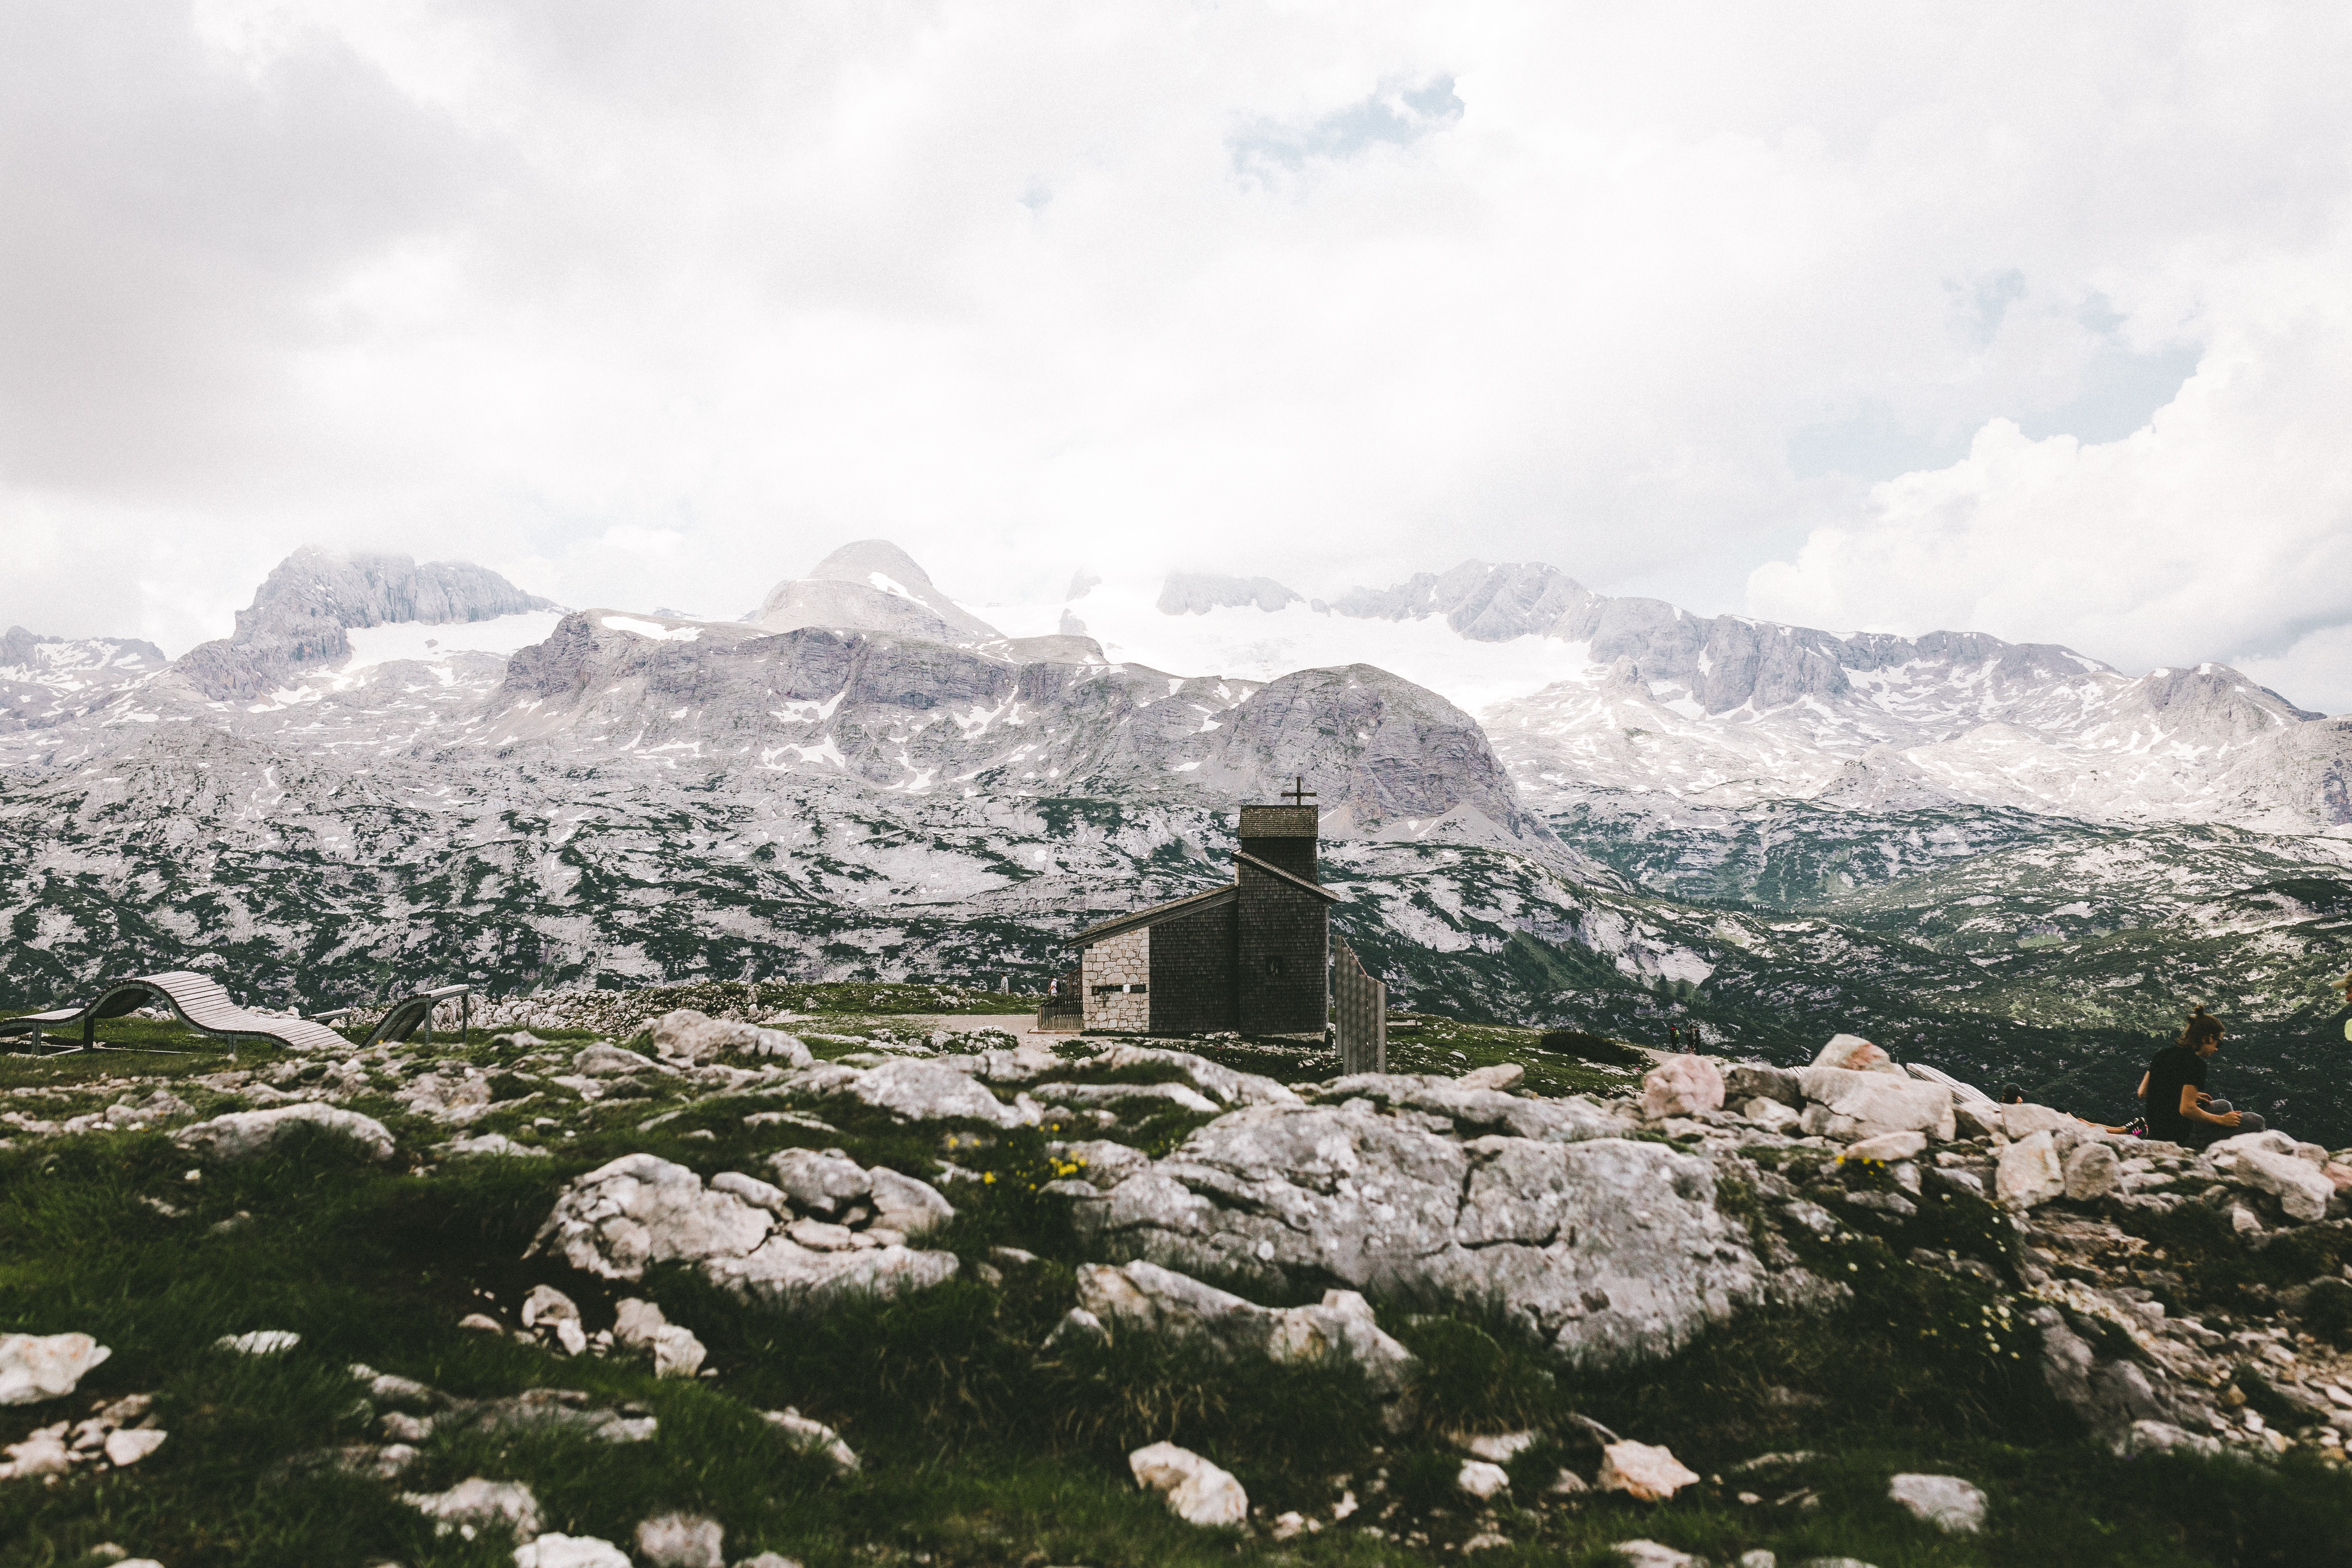 Grassy Dachstein Mountains surrounded by rock and snowy